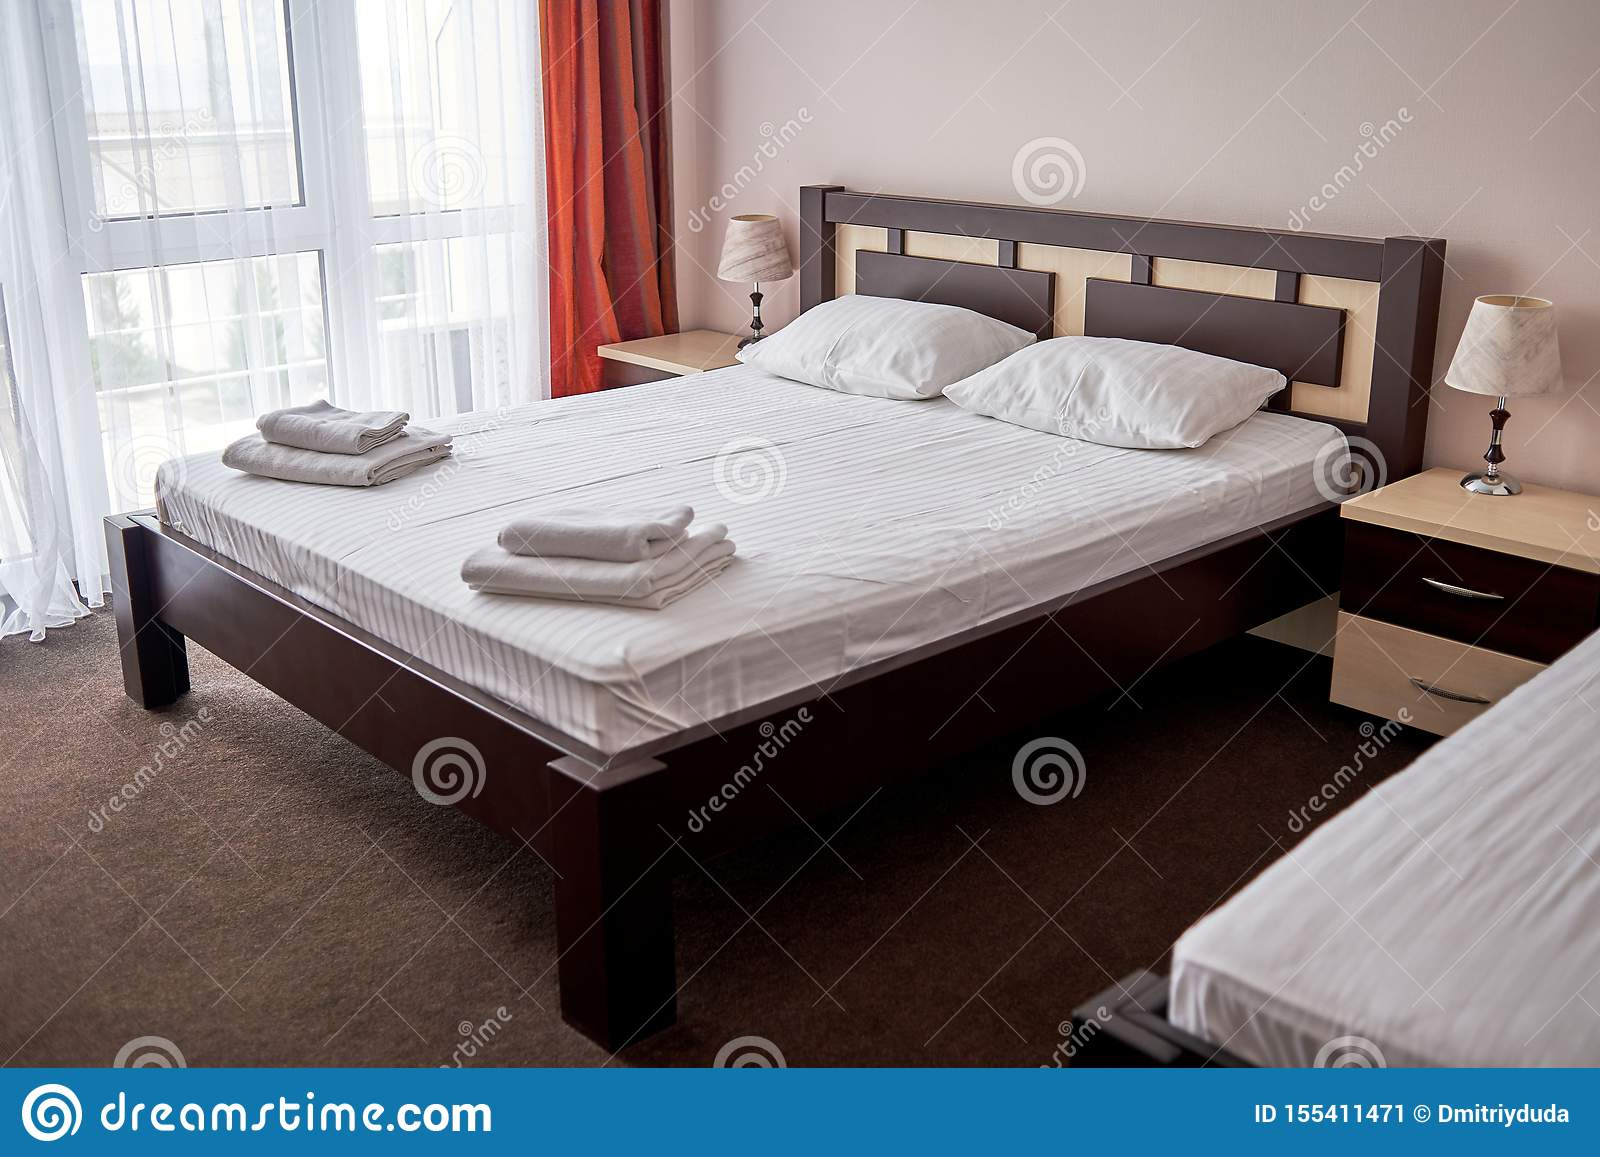 Hotel Bedroom Interior With Empty Double Bed With Wooden Headboard Bedside Table And Big Window Copy Space White Sheet Stock Image Image Of Bedding Copy 155411471